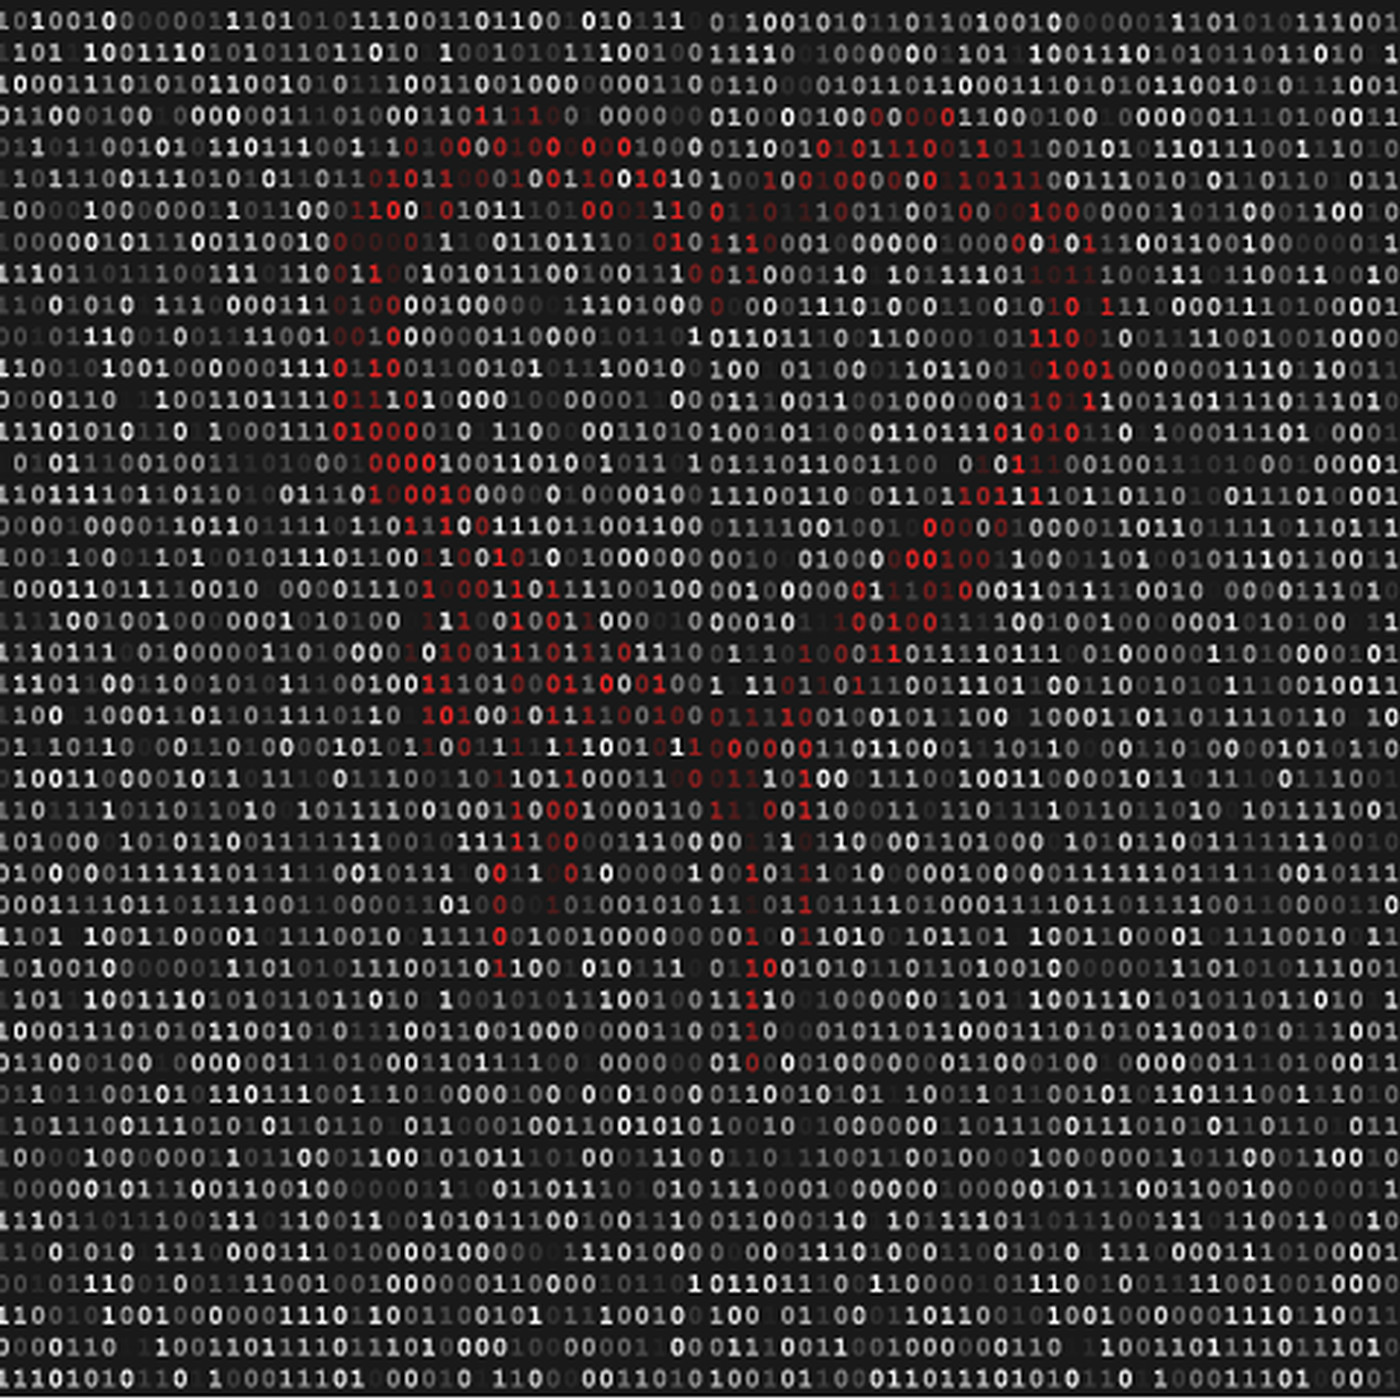 Heartbleed for Mobile': Researcher Finds Massive Security Flaw in